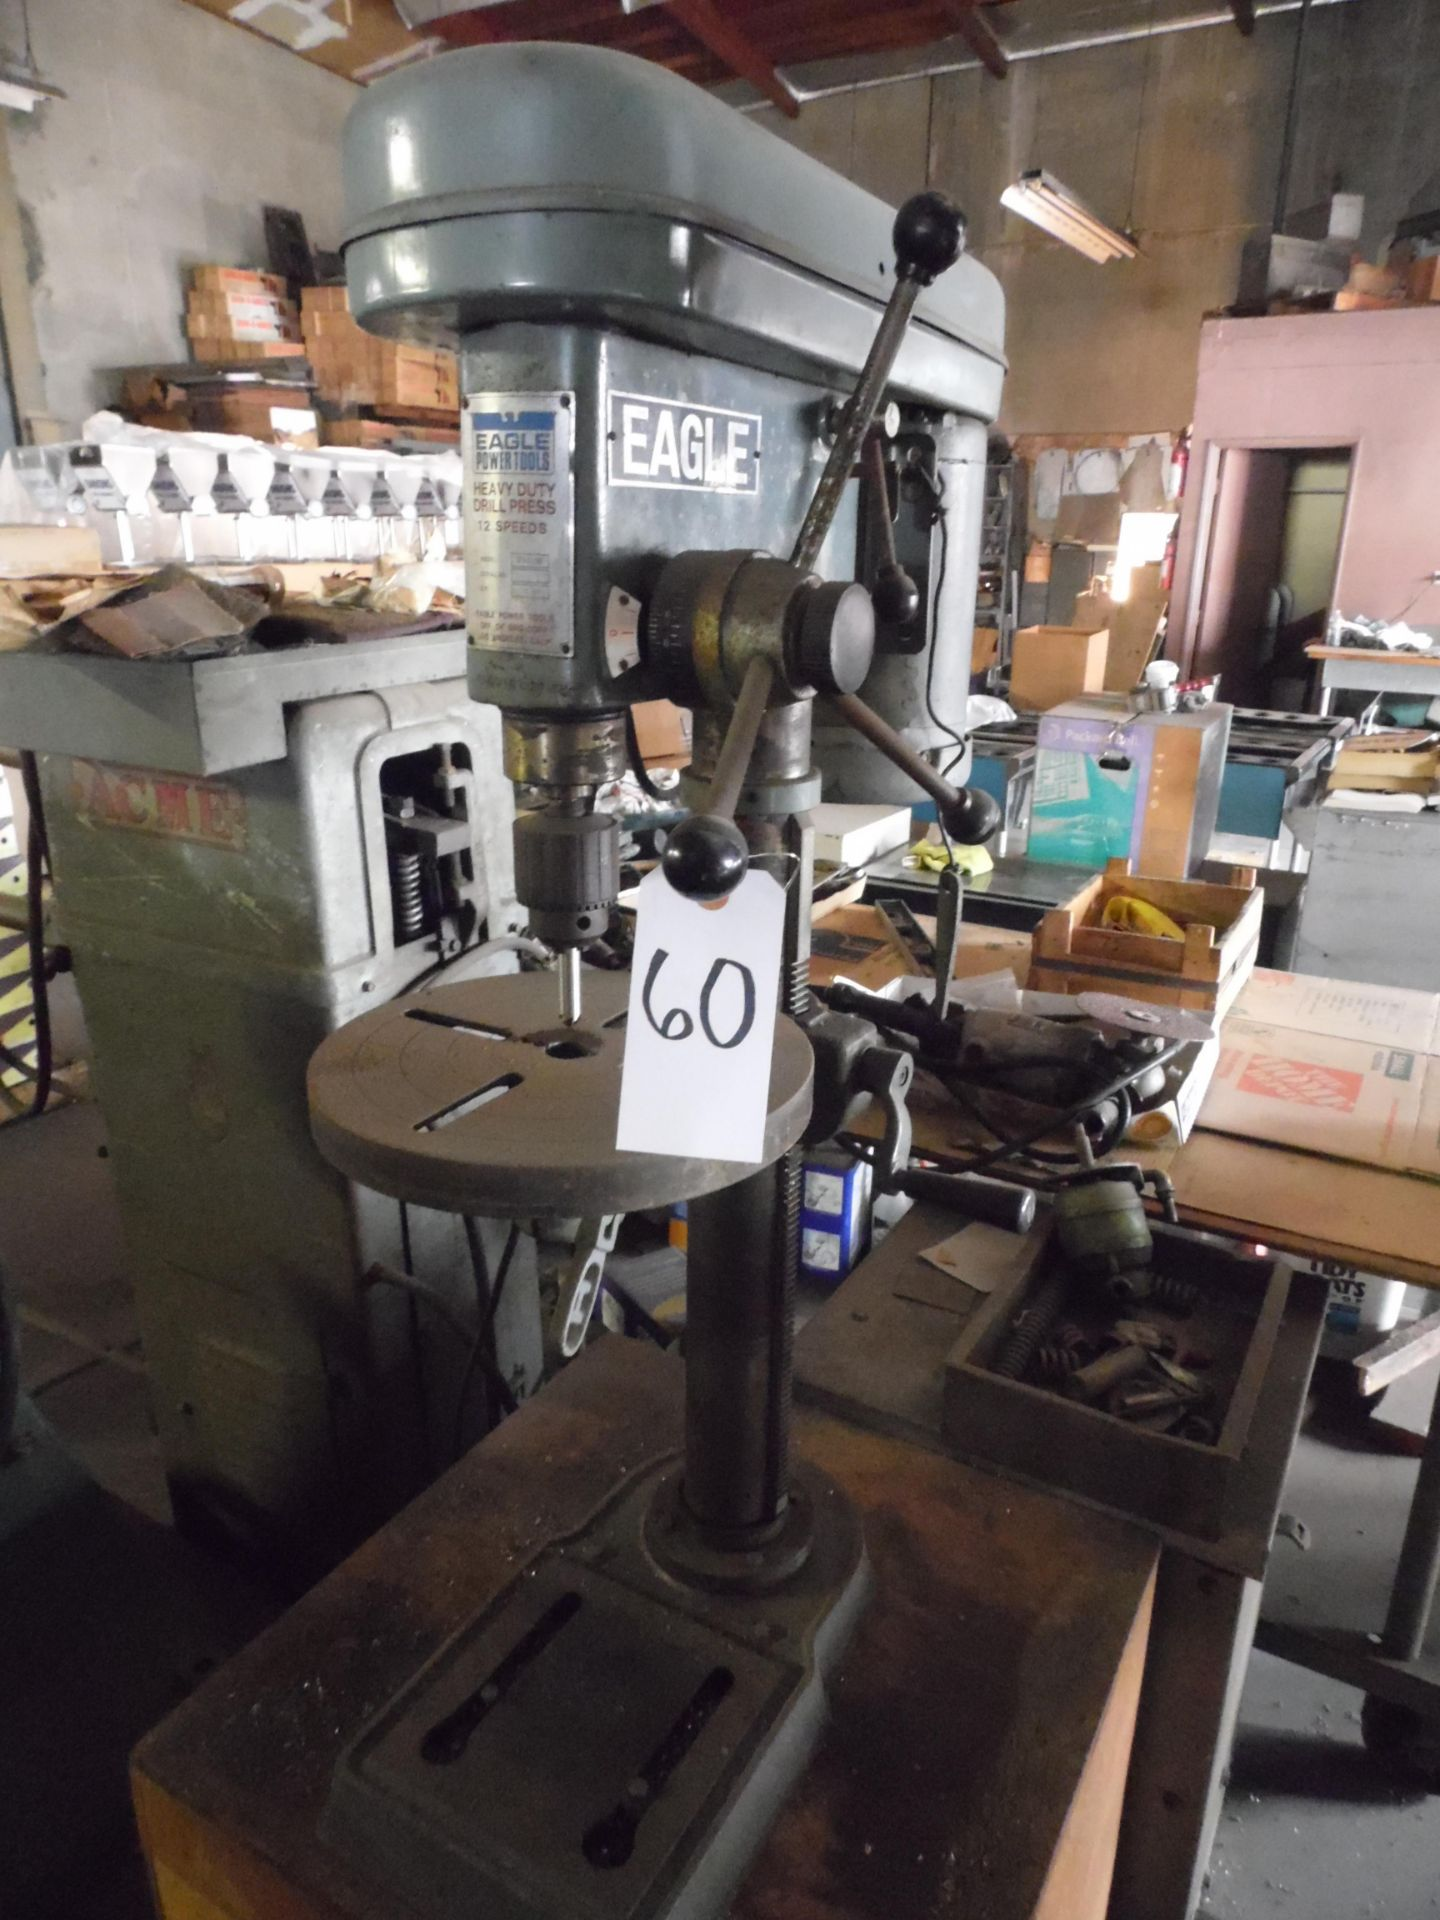 Lot 60 - EAGLE 12 SPEED TABLE TOP DRILL PRESS